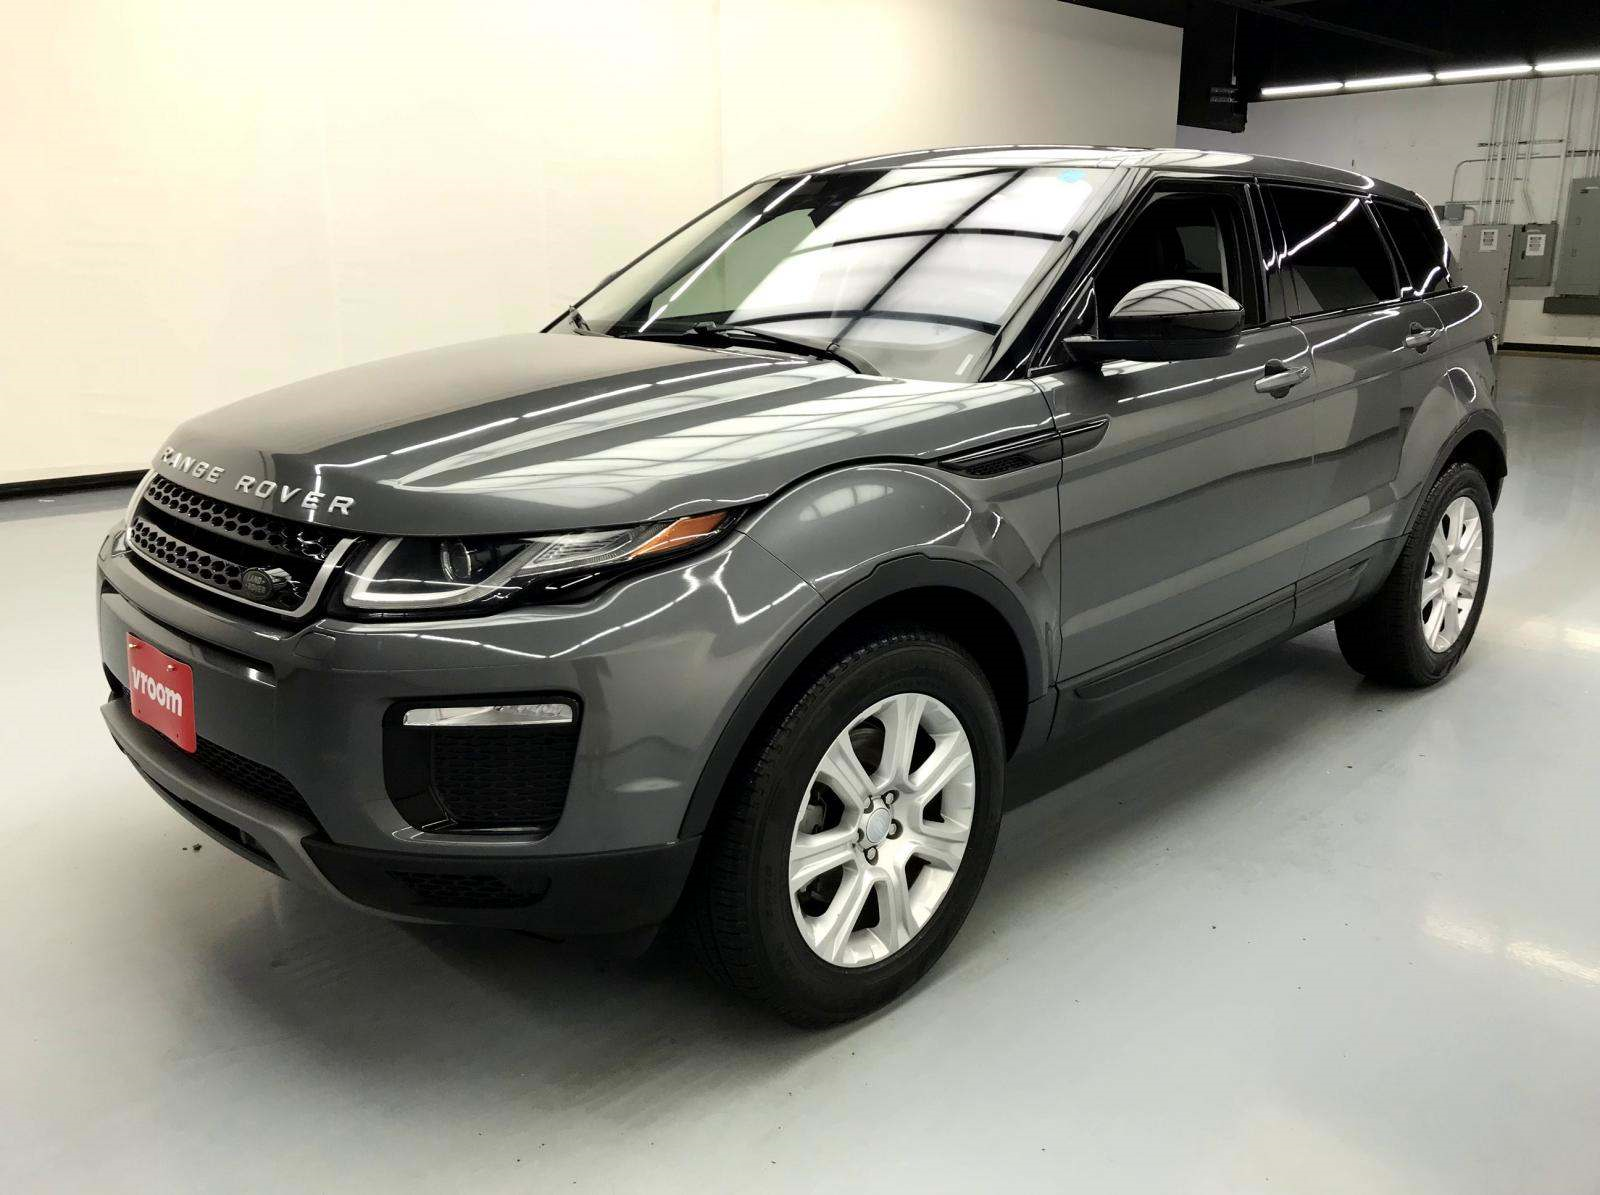 2019 Jaguar F Pace 36590 00 For Sale In Stafford Tx 77477 Incacar Com Land Rover Buy Used Cars Land Rover Models